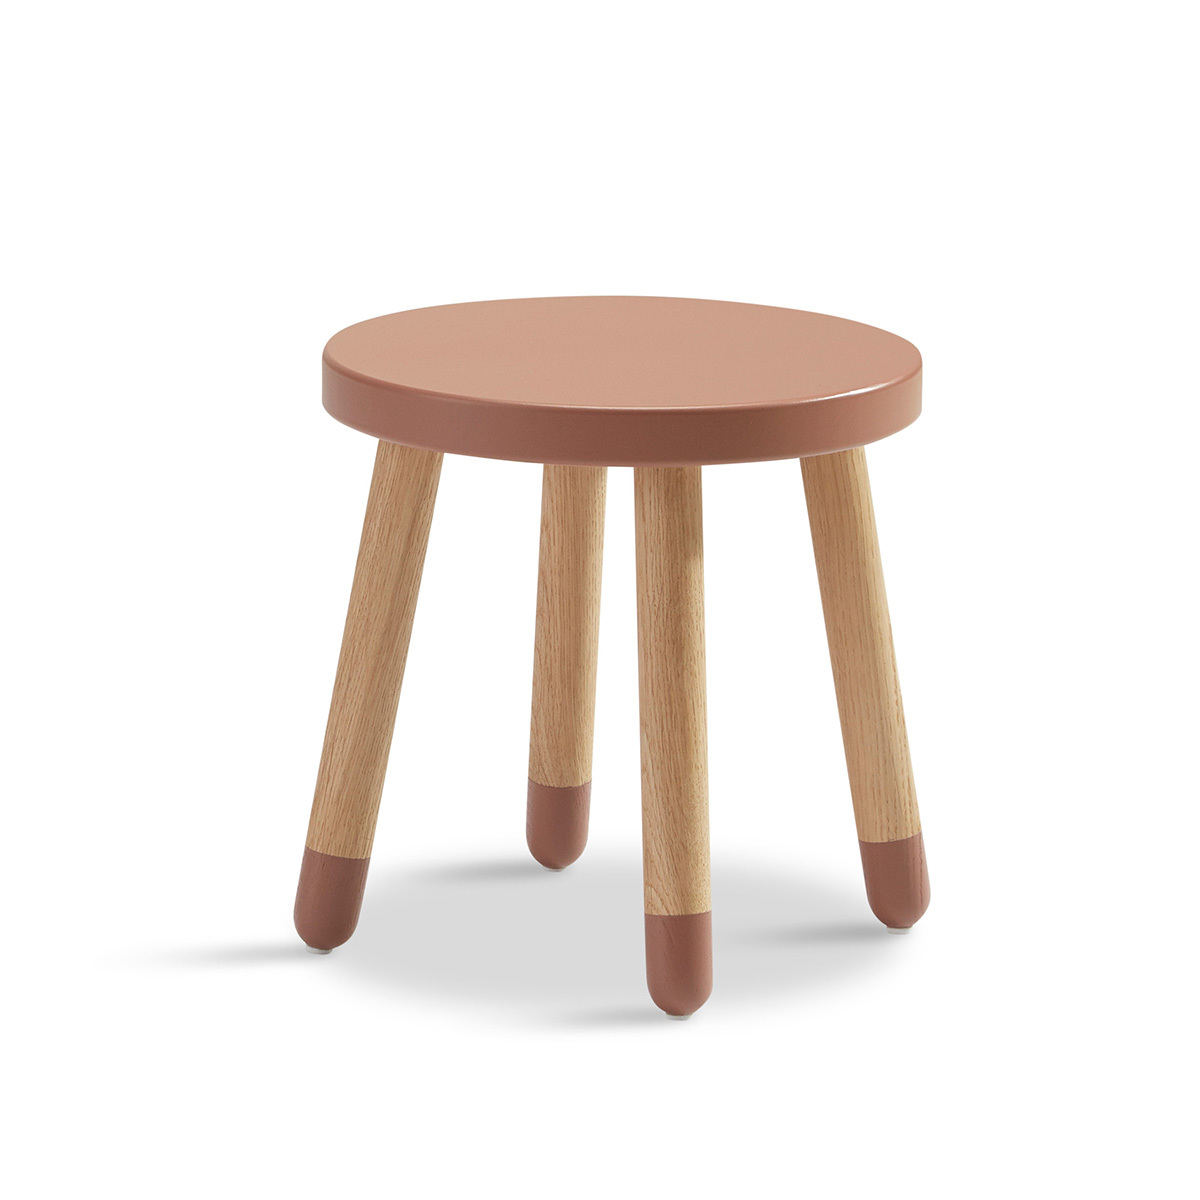 Table & Chaise Tabouret PLAY Cherry - 30 cm Tabouret PLAY Cherry - 30 cm